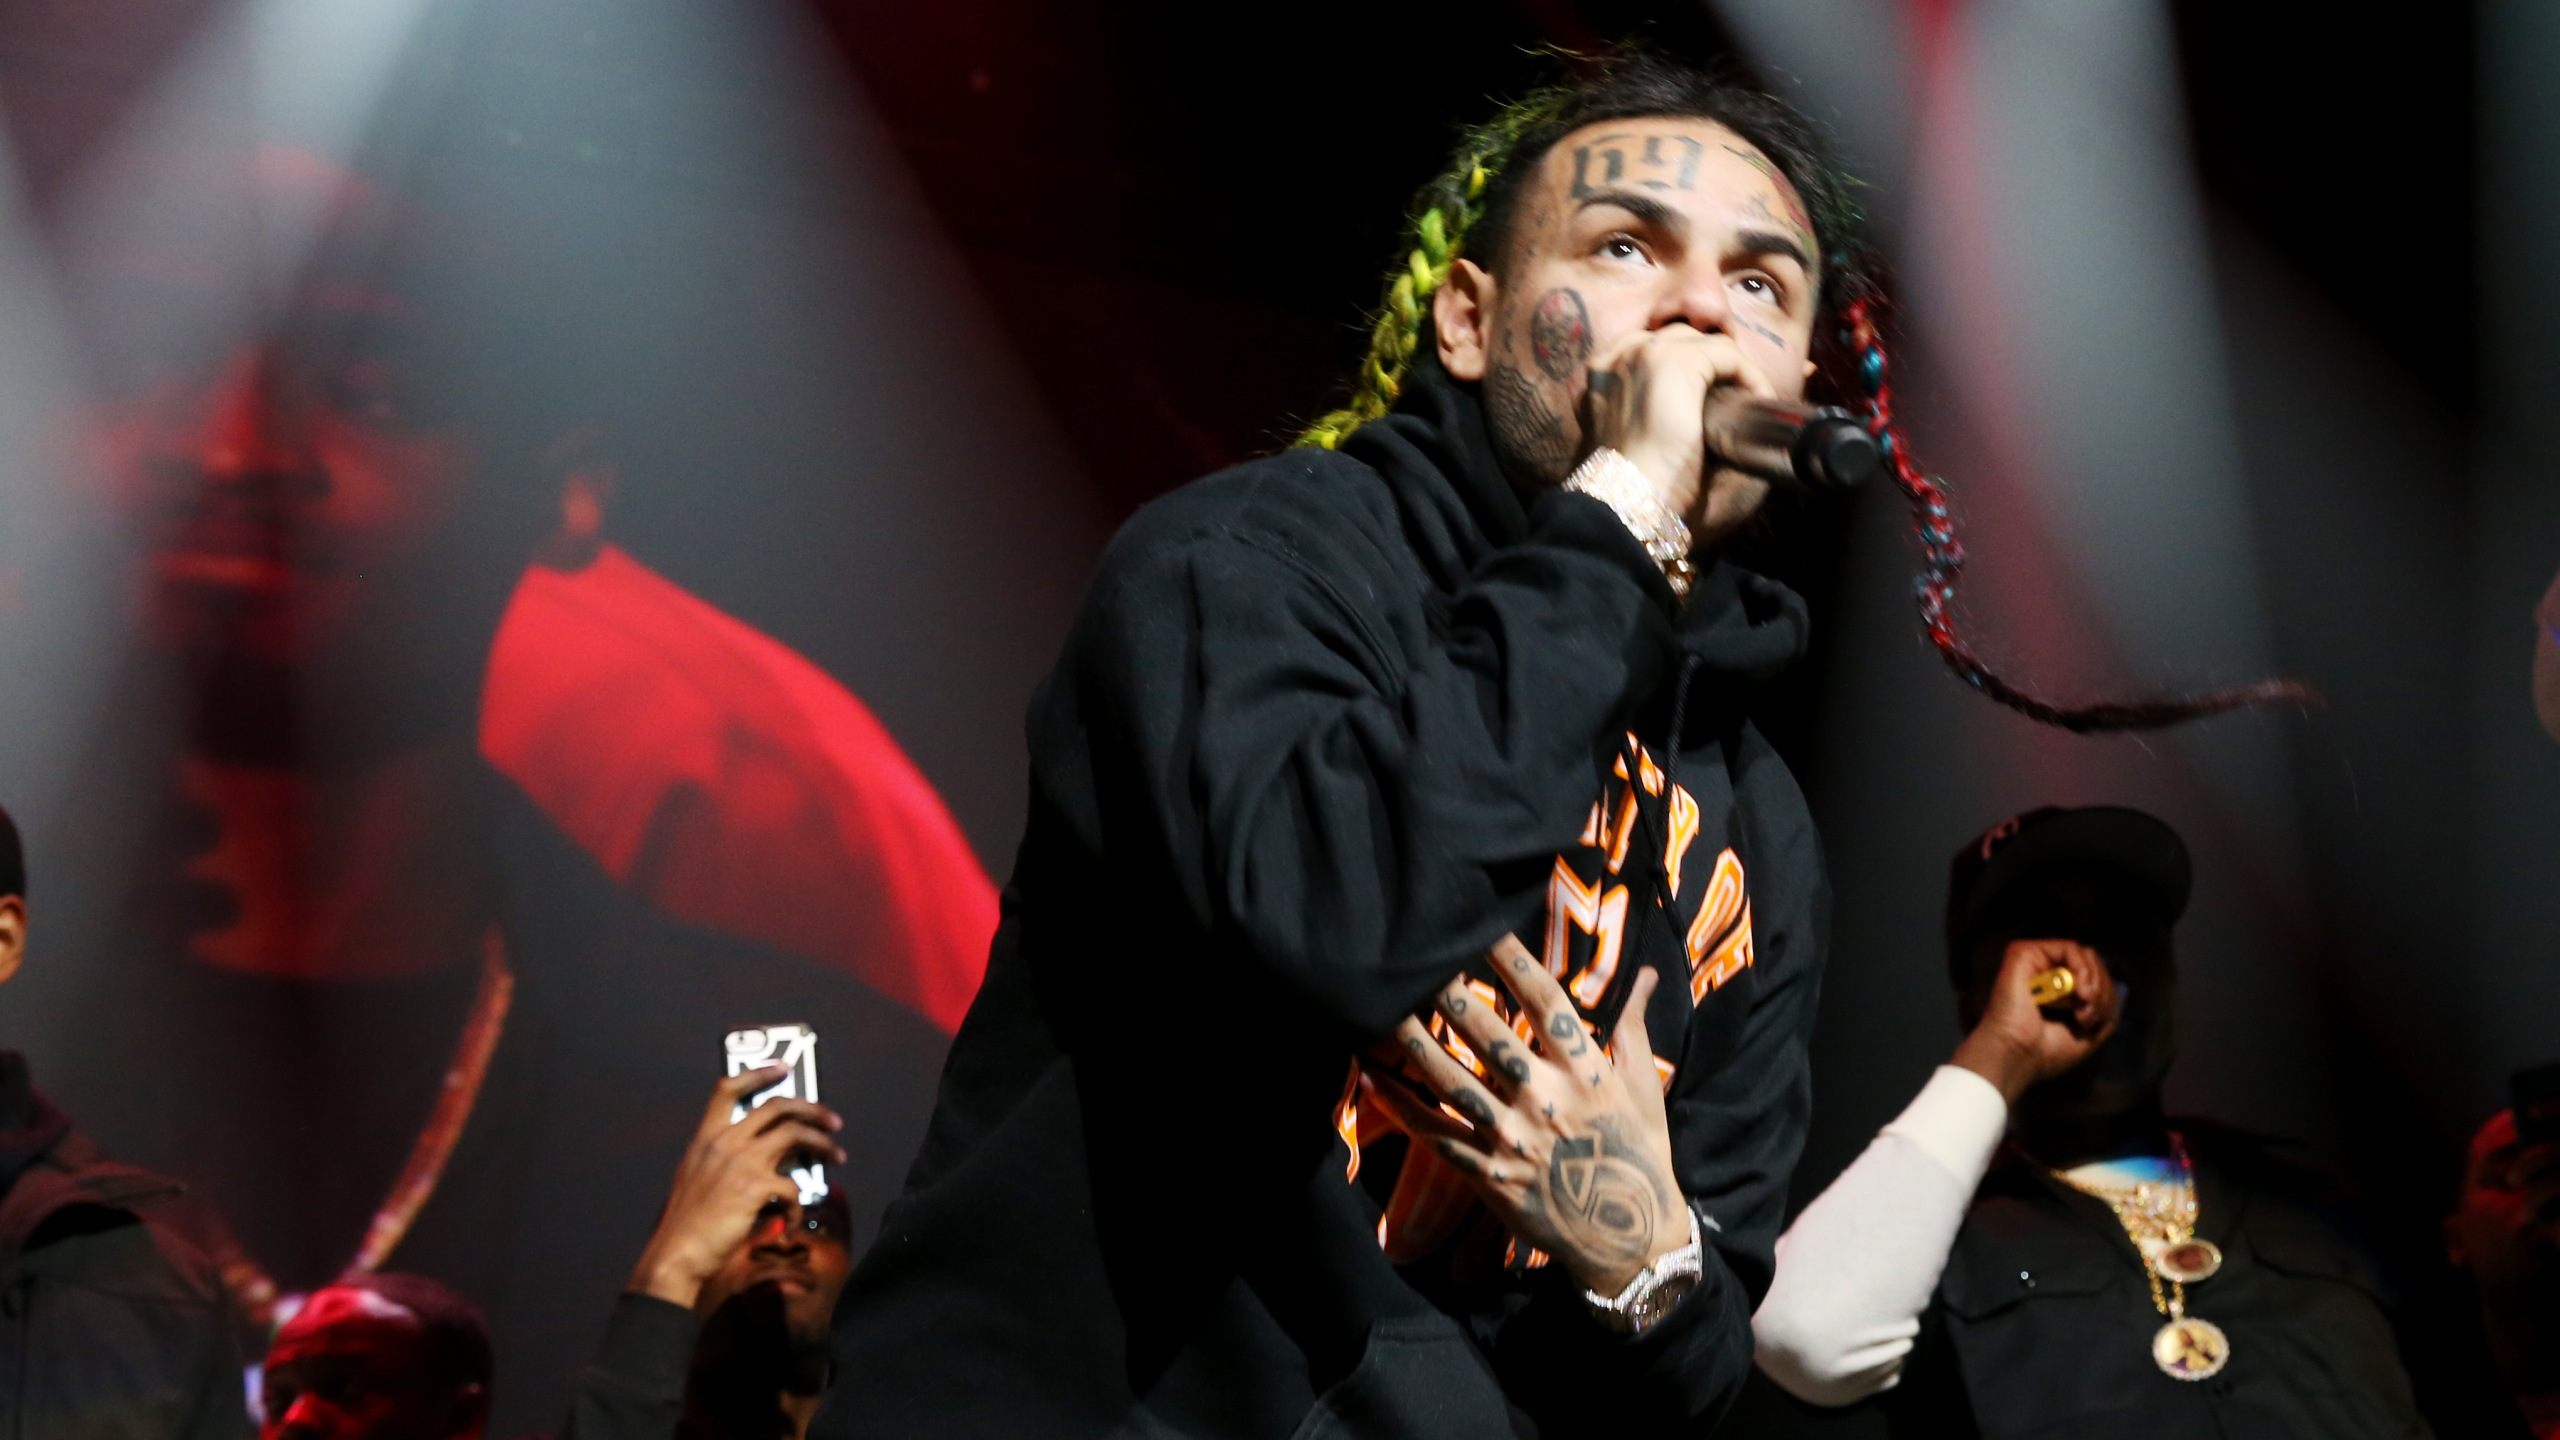 Rapper 6ix9ine performs at Prudential Center on Oct. 28, 2018, in New Jersey. (Credit: Bennett Raglin/Getty Images for Power 105.1)